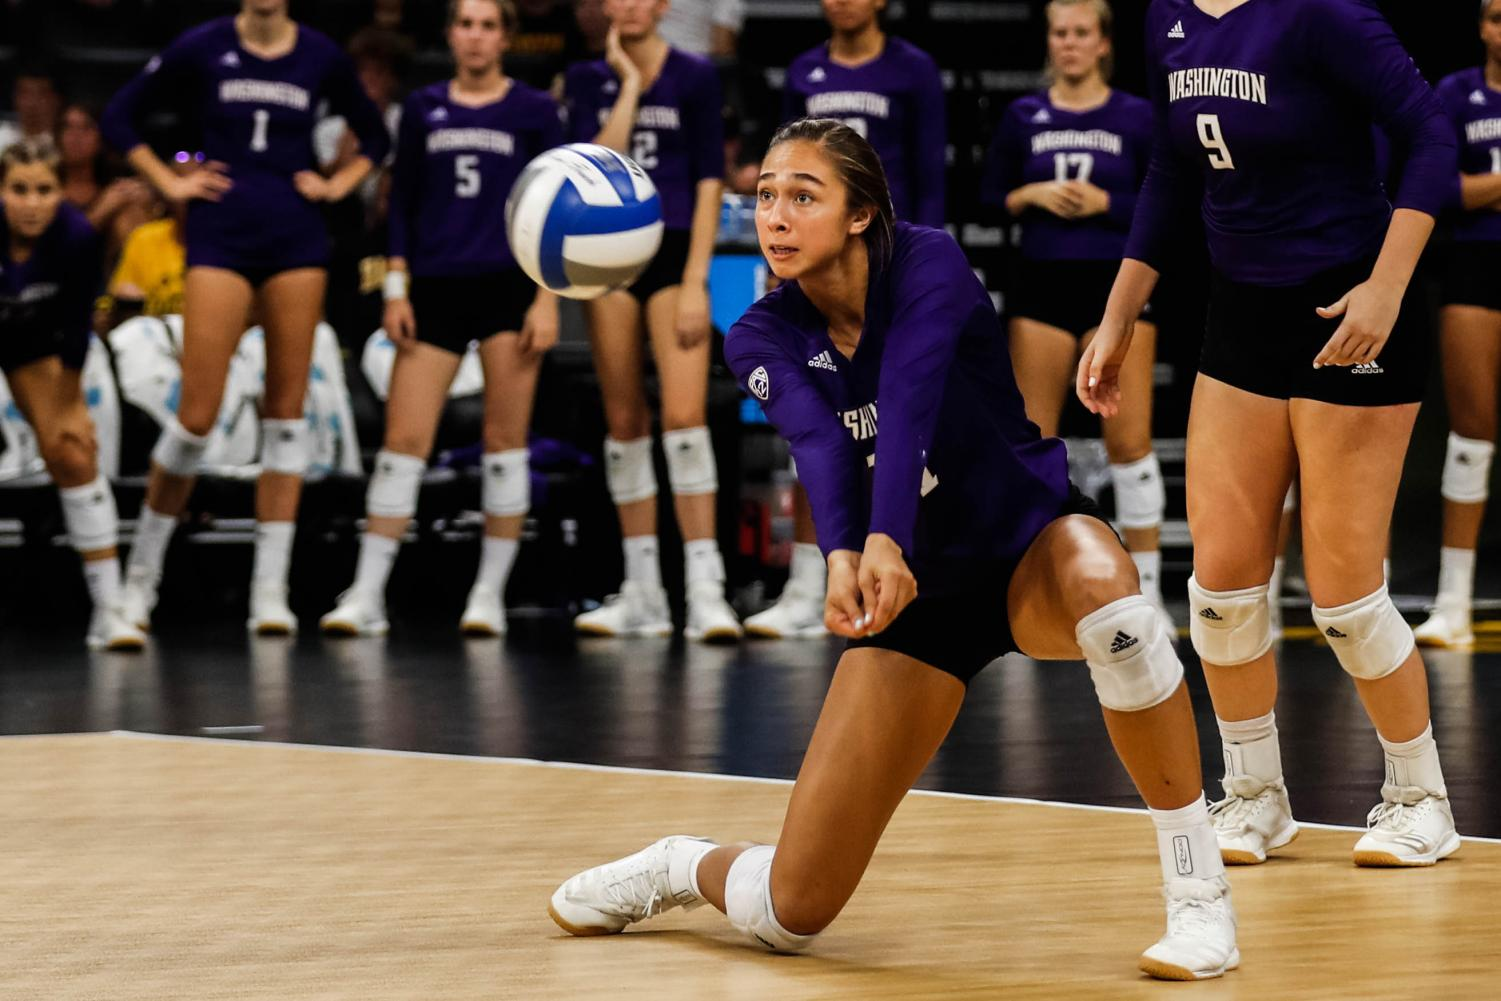 Washington+outside+hitter+Shannon+Crenshaw+returns+a+serve+during+a+volleyball+match+between+Iowa+and+Washington+at+Carver+Hawkeye+Arena+on+Saturday%2C+September+7%2C+2019.+The+Hawkeyes+were+defeated+by+the+Huskies%2C+3-1.